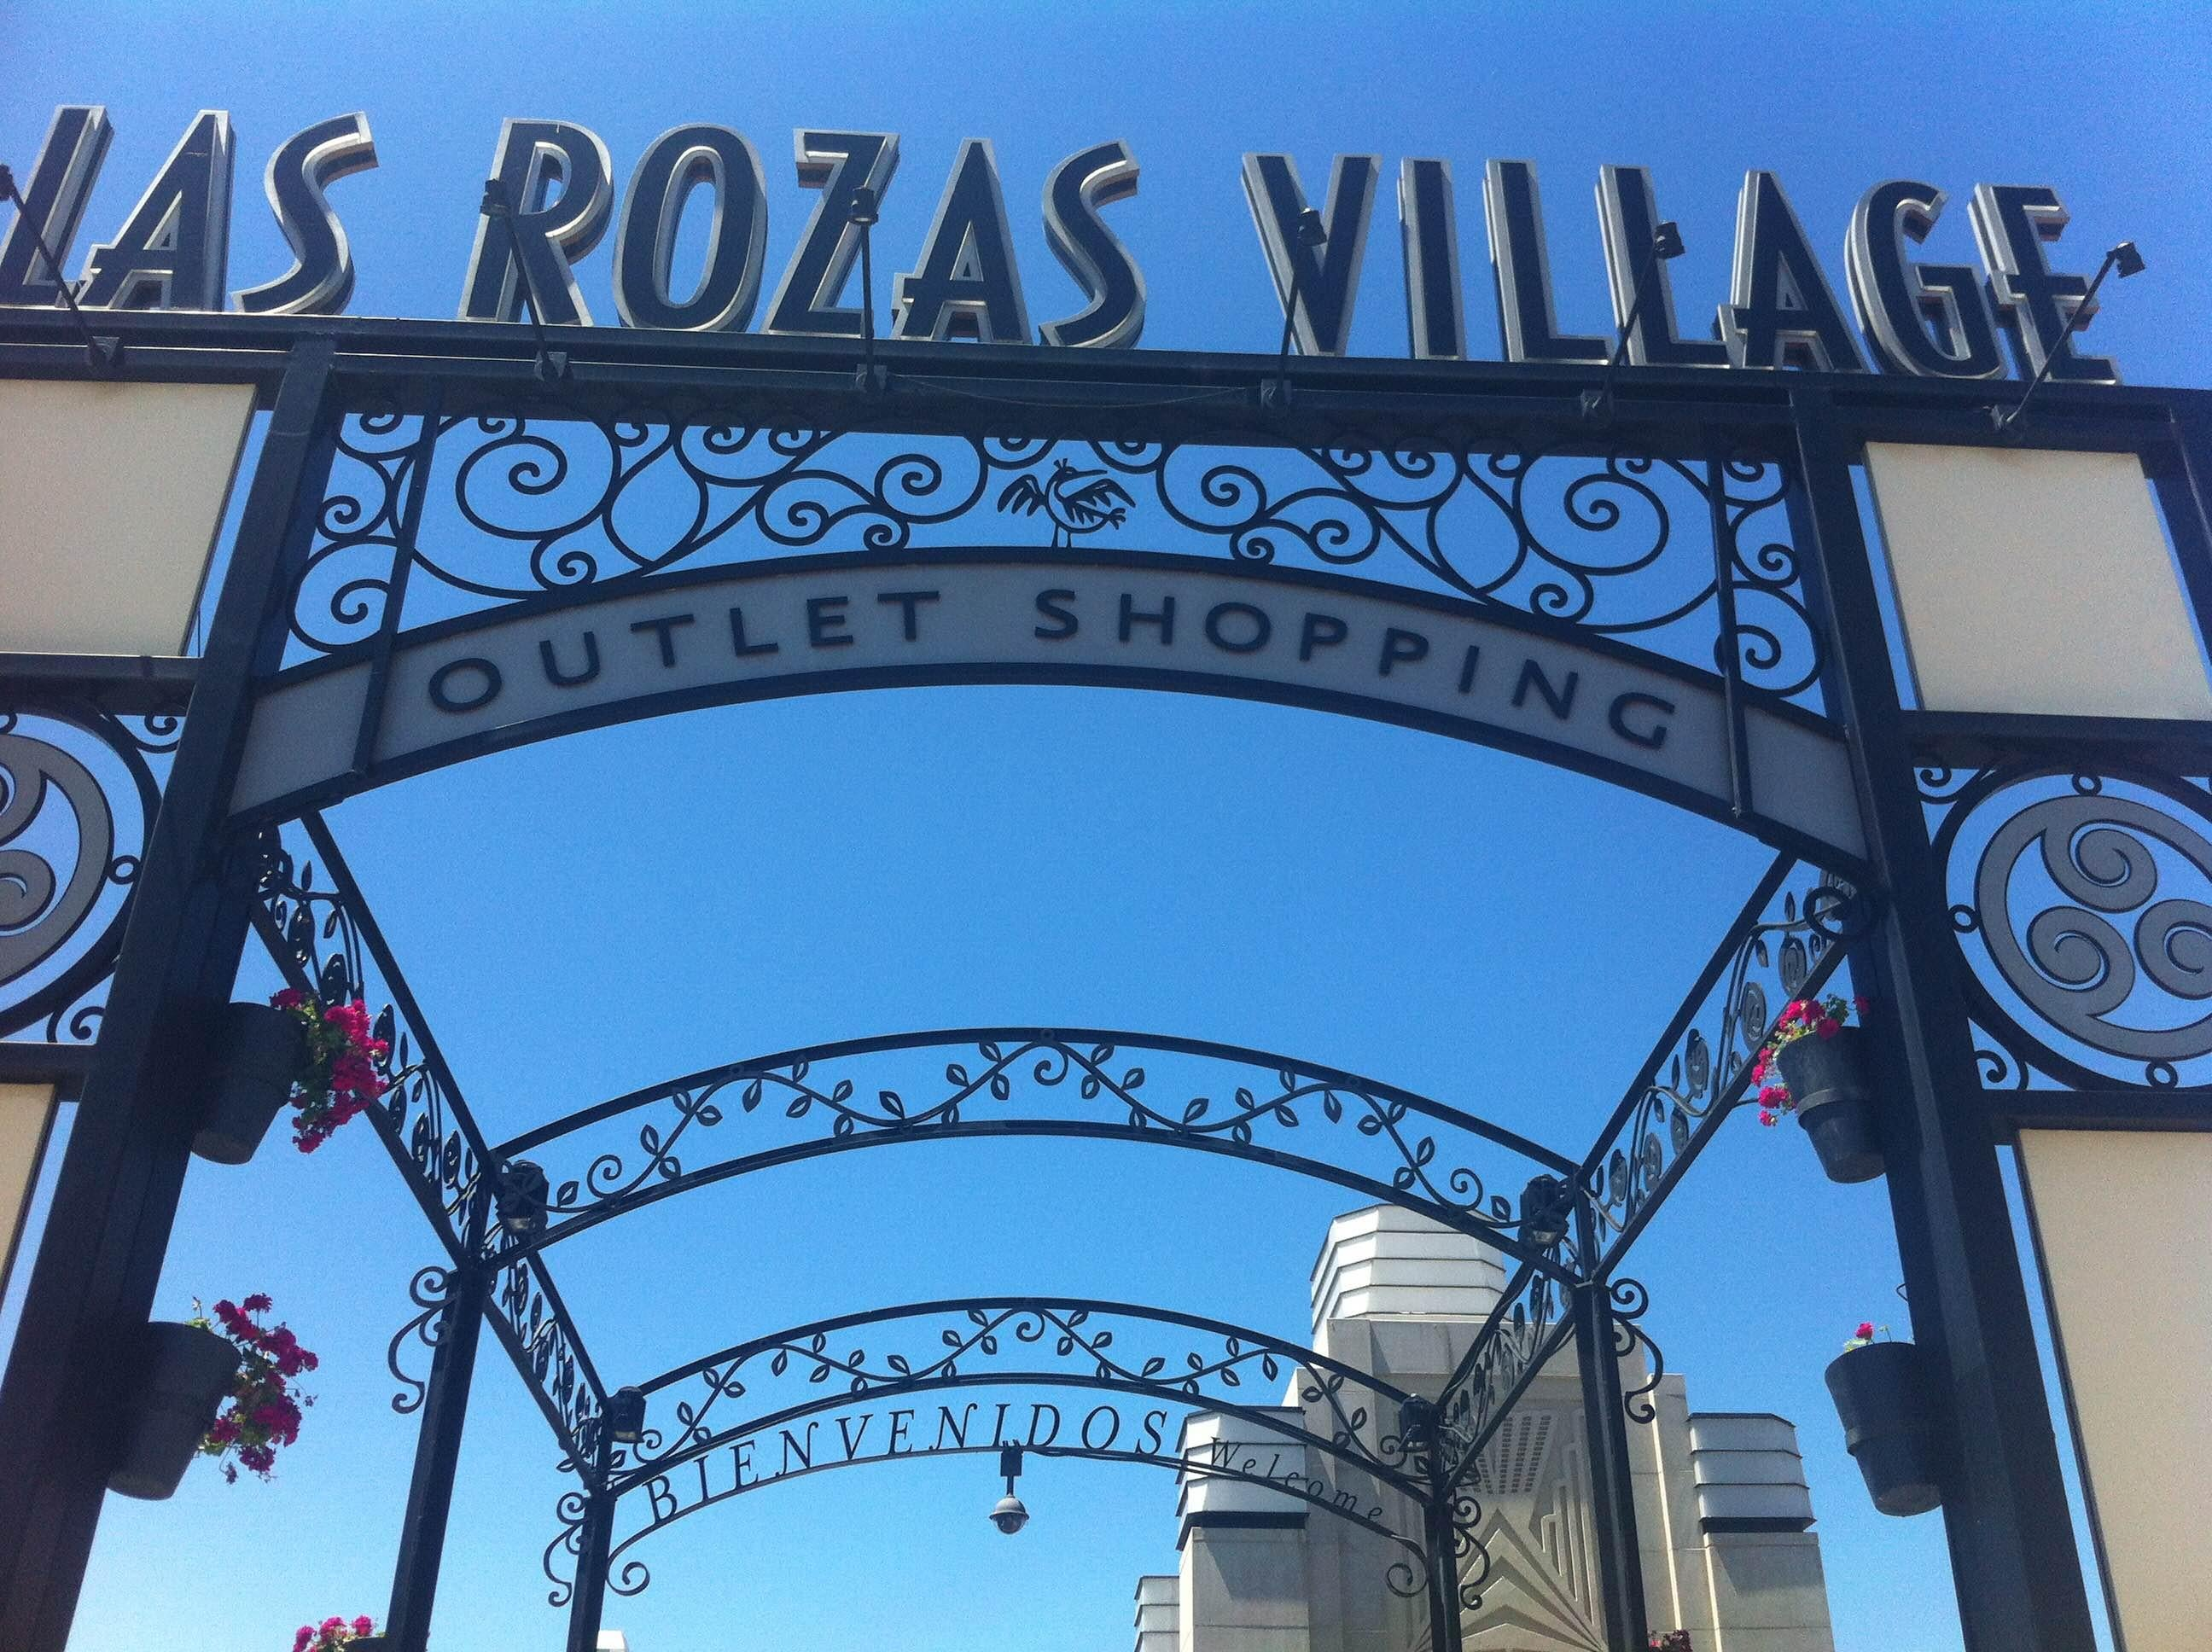 Las Rozas Village outlet shopping